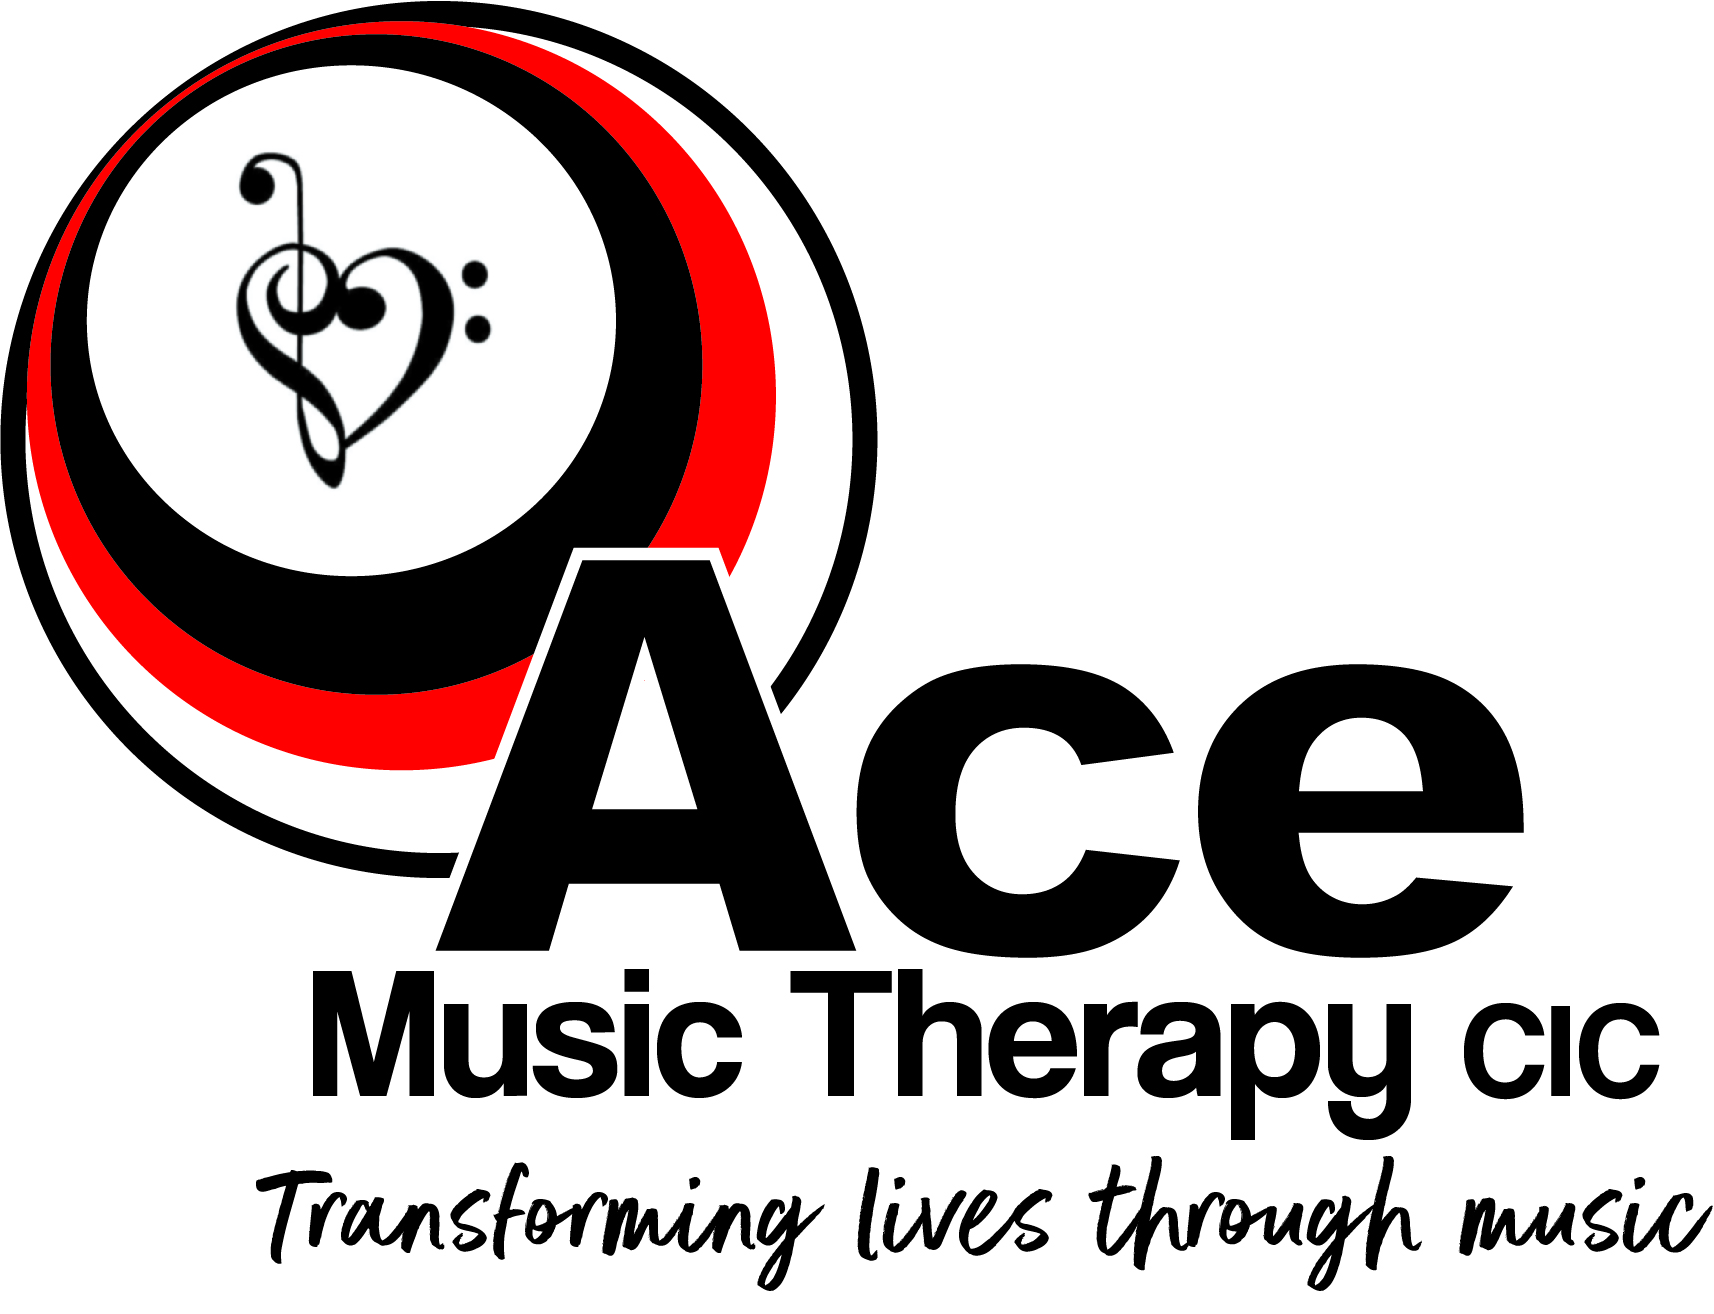 Social Enterprise Stories: Ace Music Therapy CIC